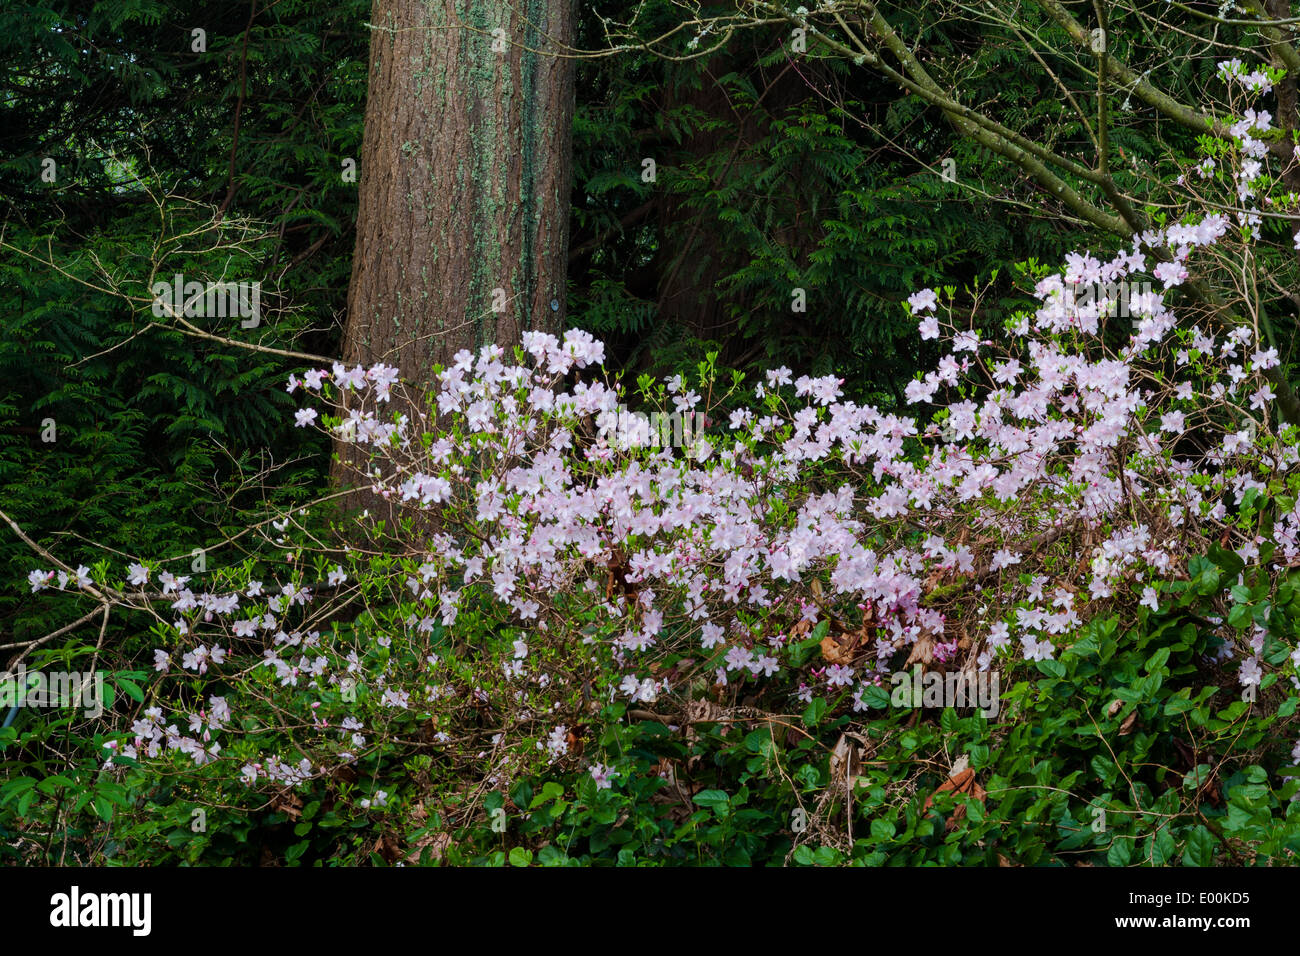 Native species of Rhododendron growing in a temperate rain forest - Stock Image